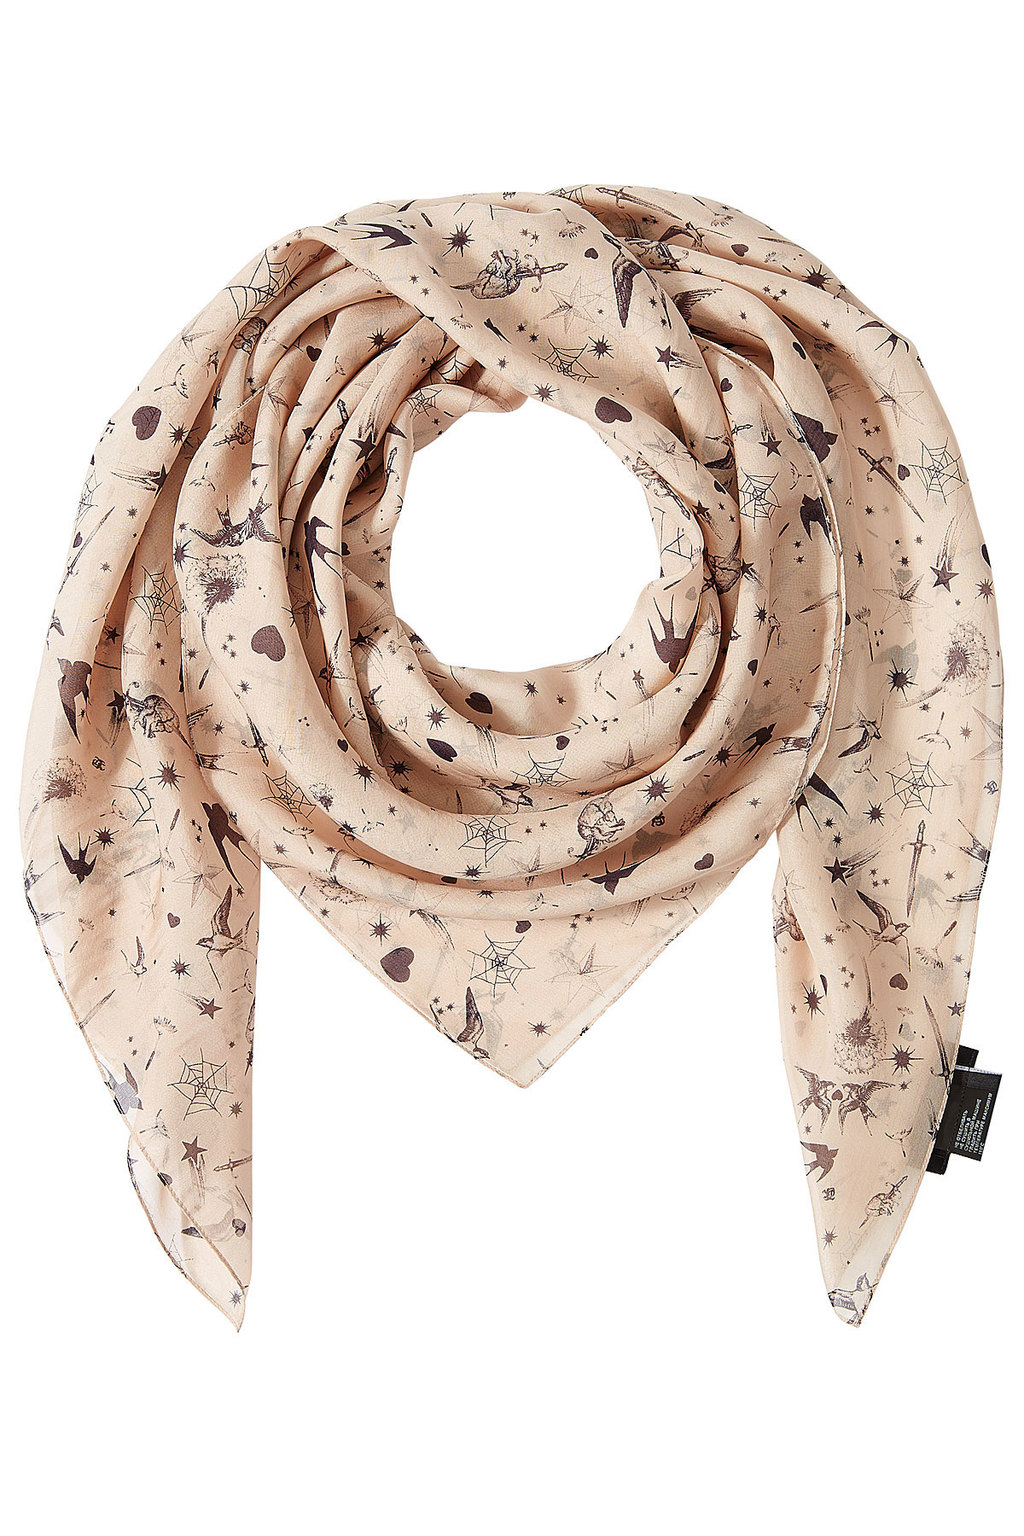 Printed Silk Scarf - predominant colour: blush; occasions: casual; type of pattern: heavy; style: square; size: large; material: silk; pattern: patterned/print; season: s/s 2016; wardrobe: highlight